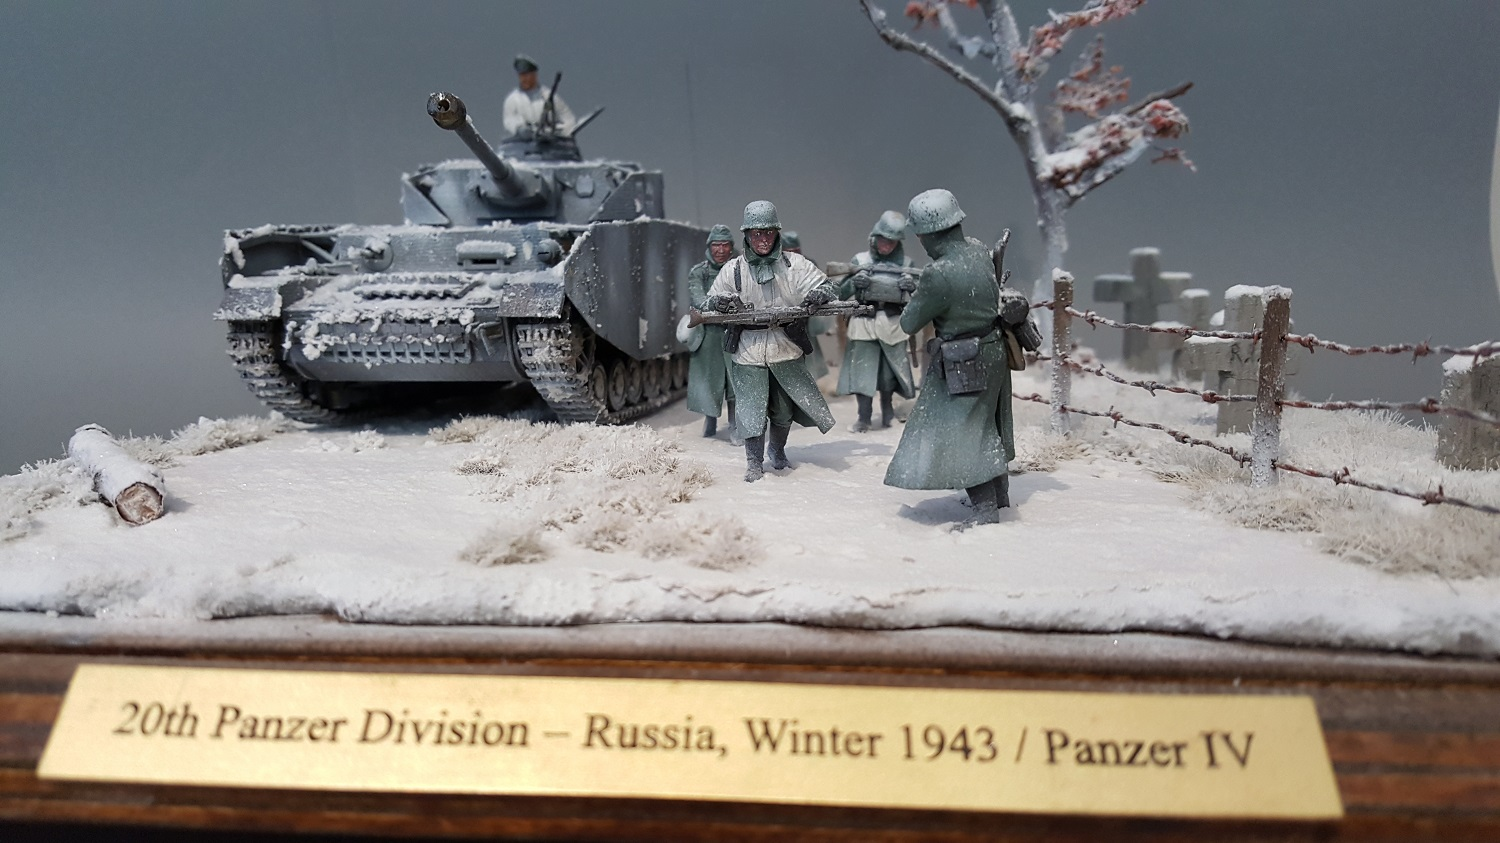 20th Panzer Division - Russia, Winter 1943 / Panzer IV